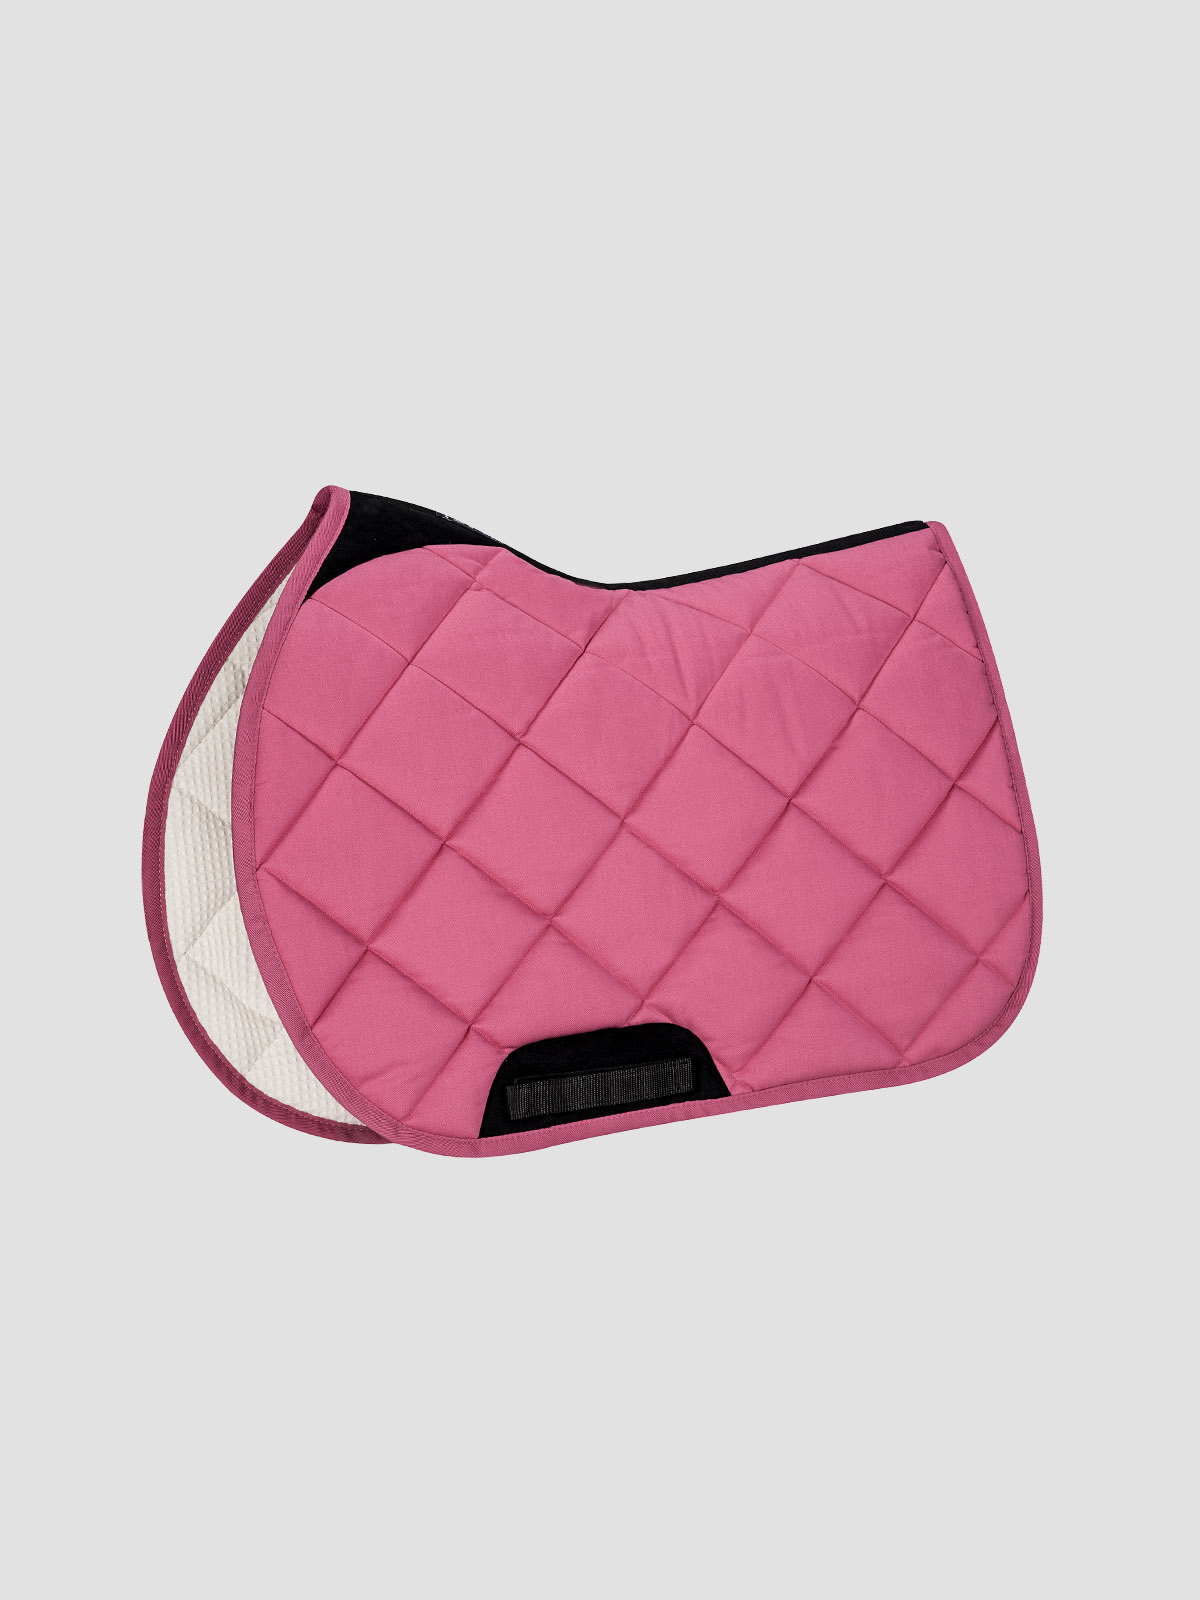 LAUREN - Rombo Saddle Pad 6